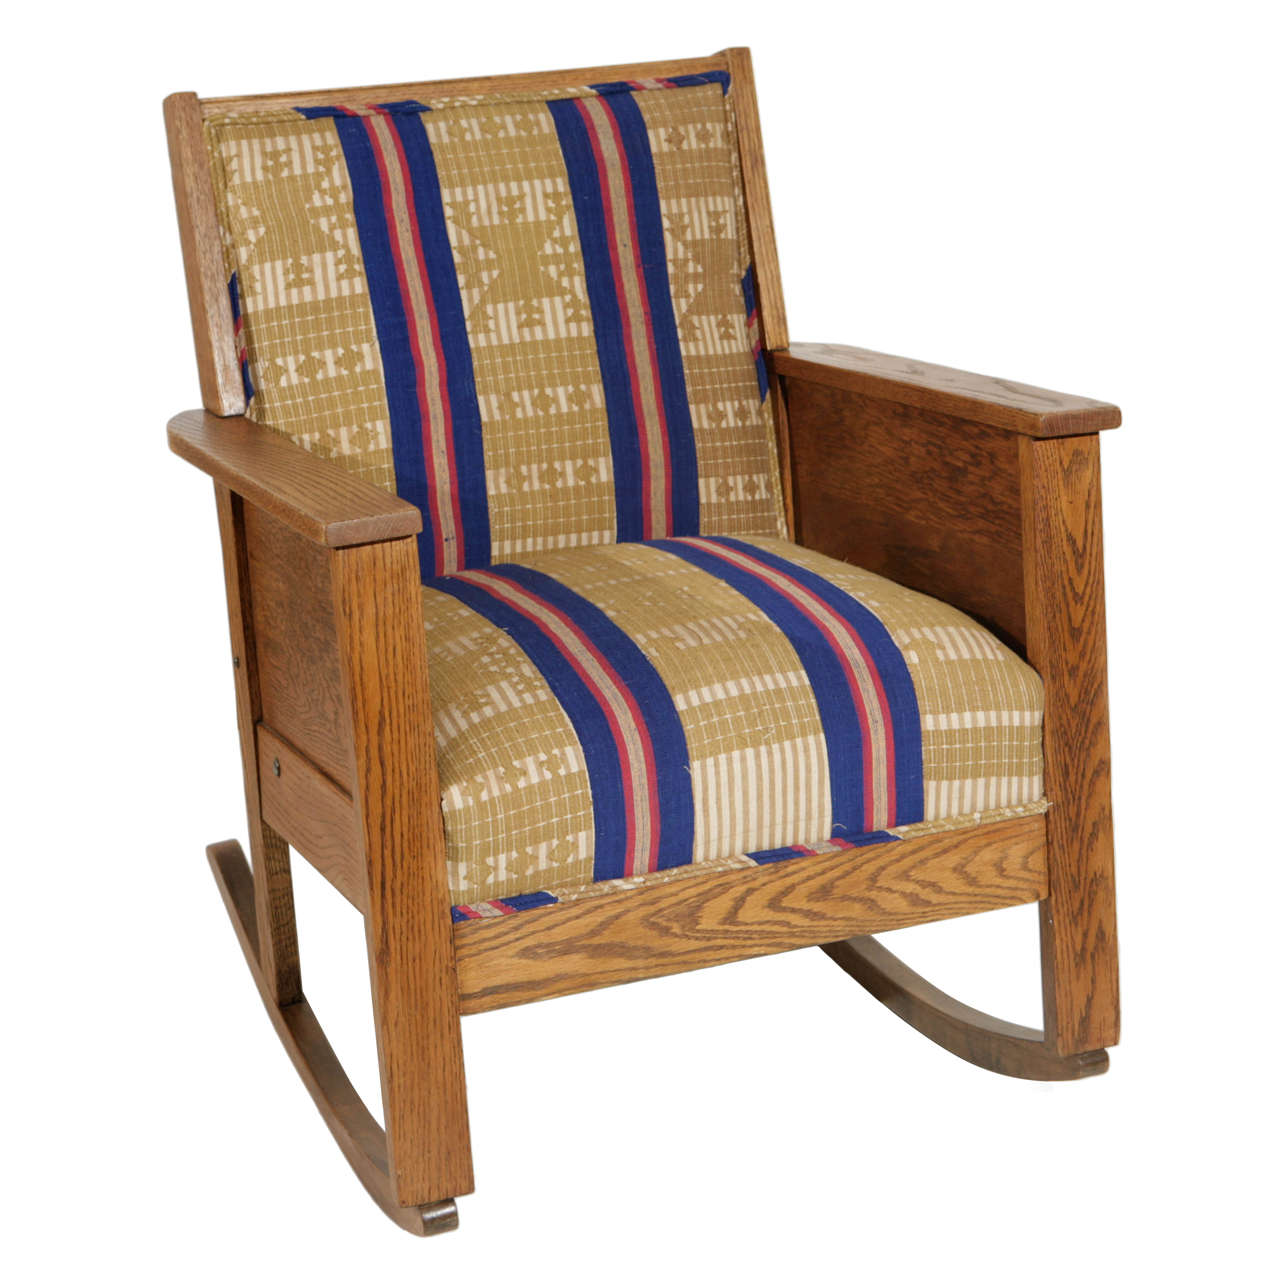 Mission Style Chairs Late 19th Century American Craftsman Mission Style Oak